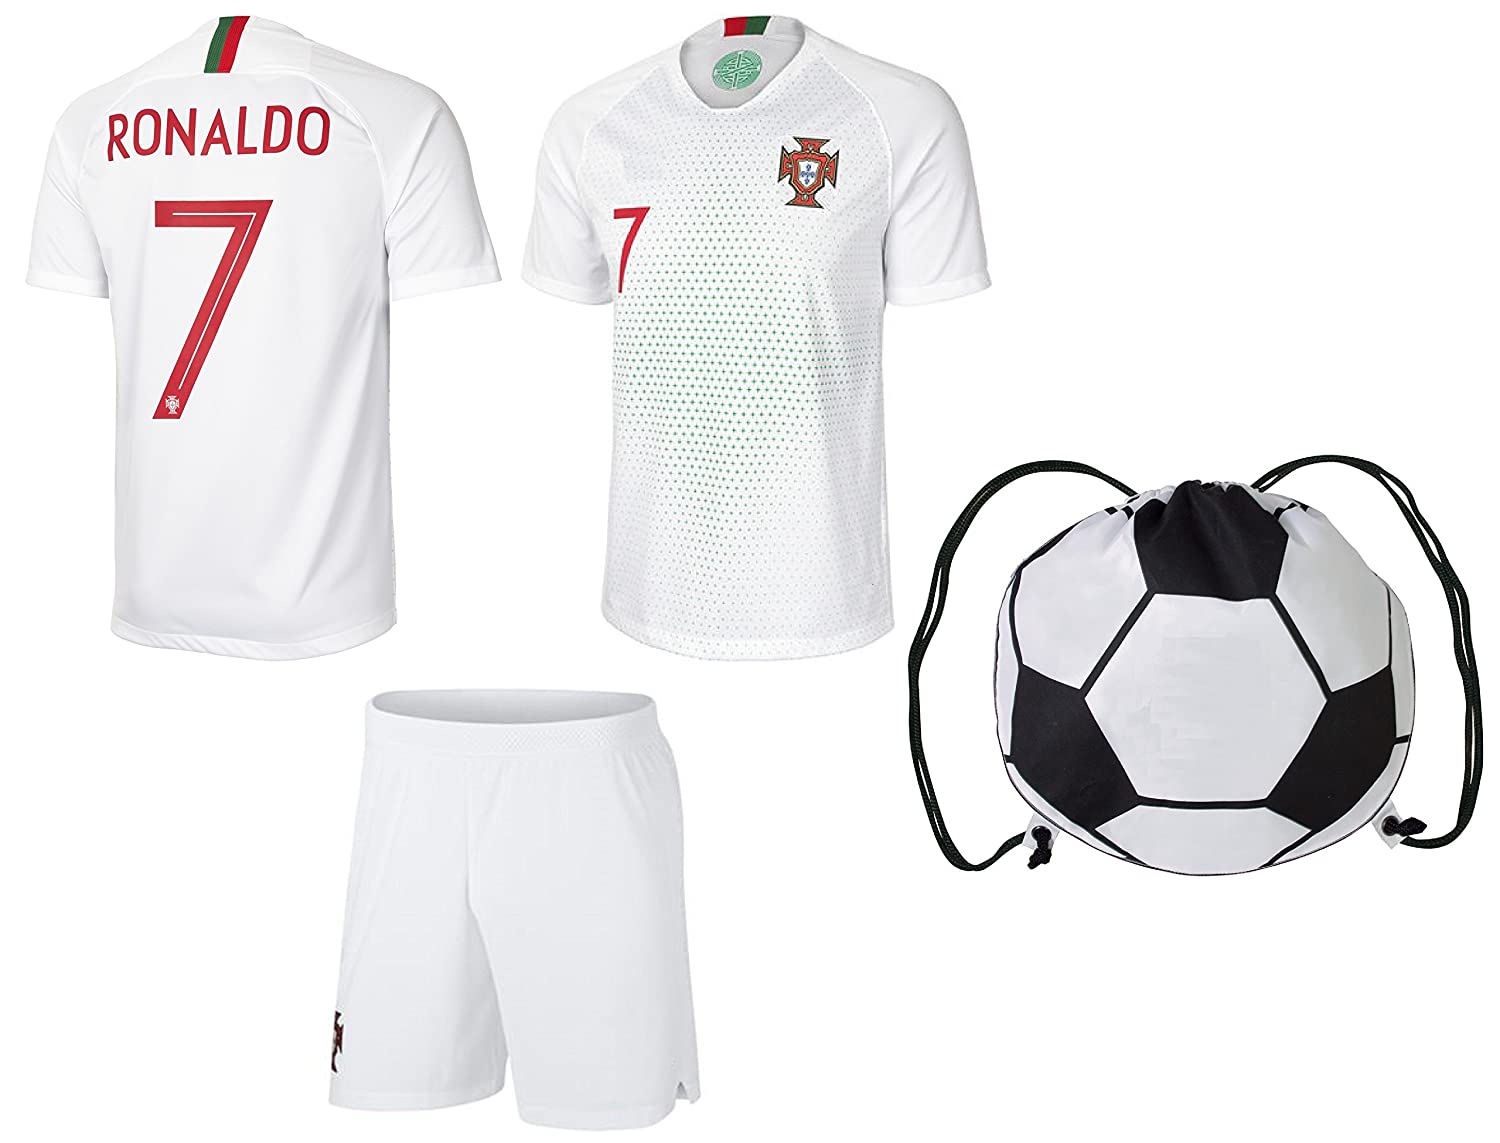 Portugal AwayブラックRonaldo Kids # 7サッカーキットJersey and Free Shortsすべてユースサイズ B07CSL1W97Kids XSmall 4-6 years of age